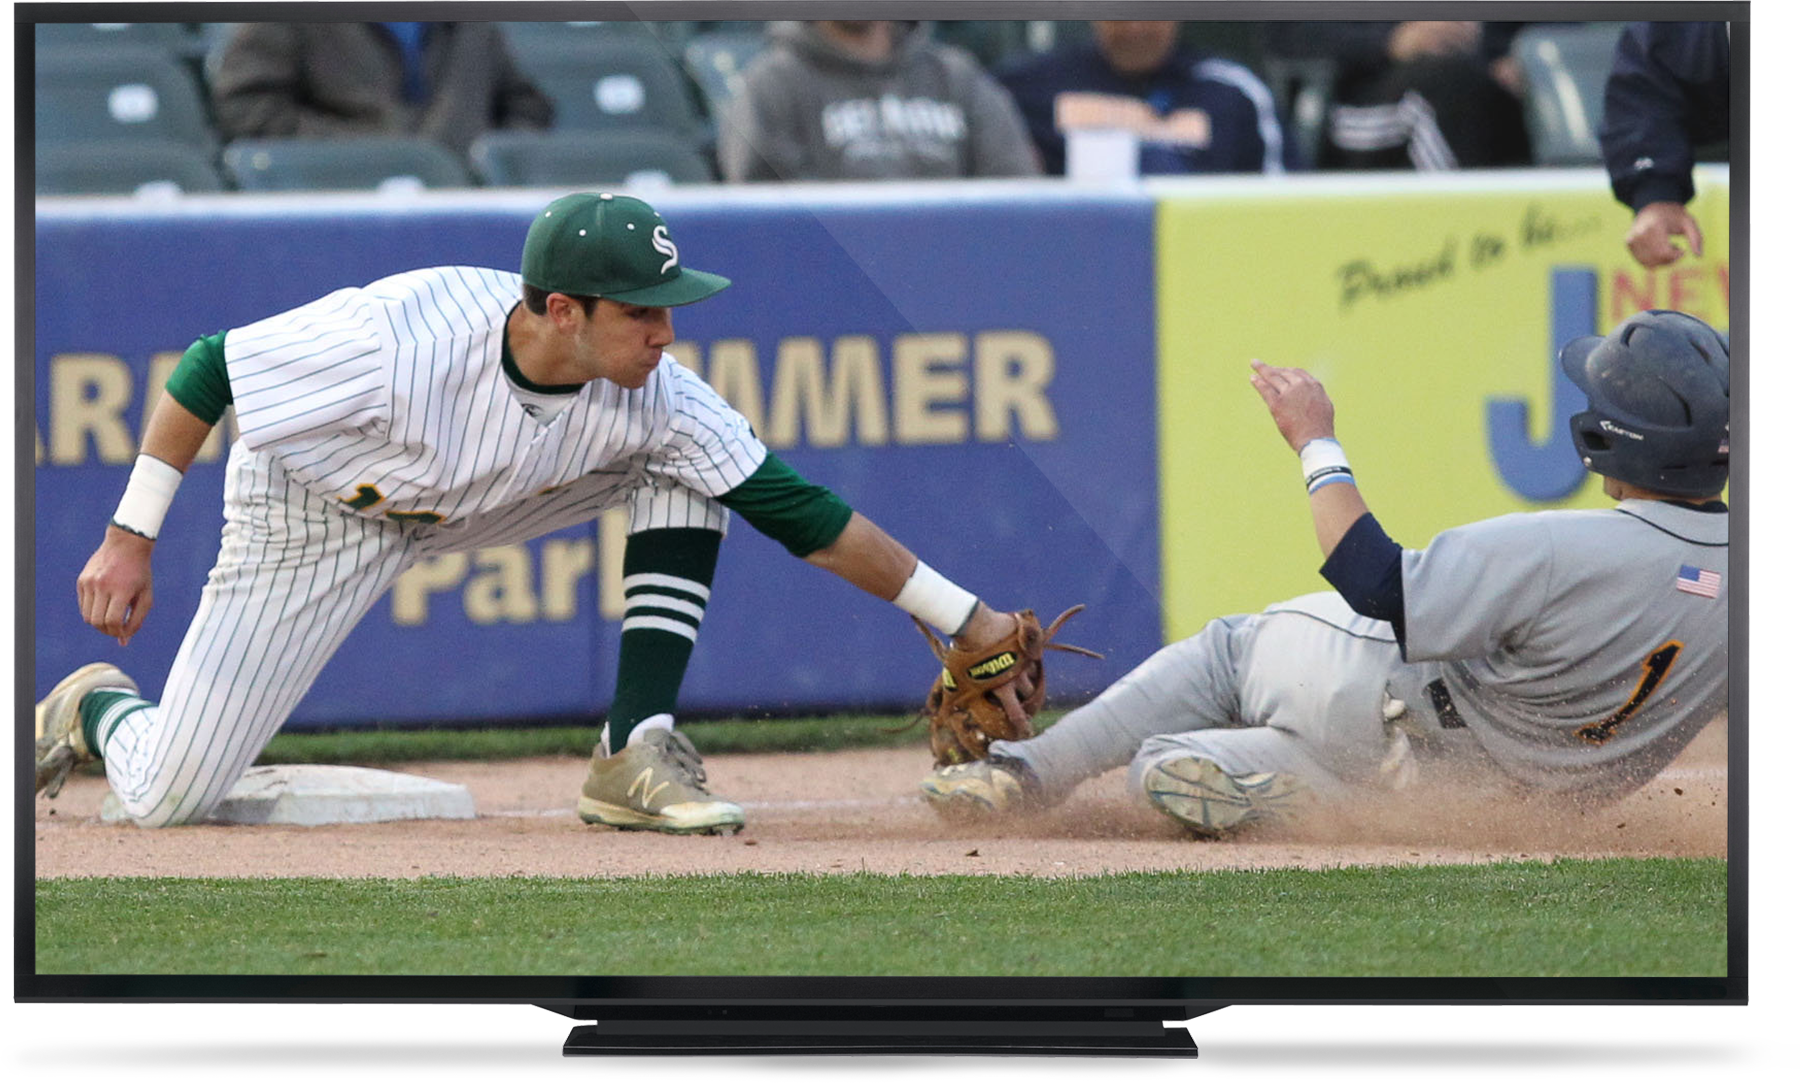 Watch Steinert High School baseball live on WBCB Sports